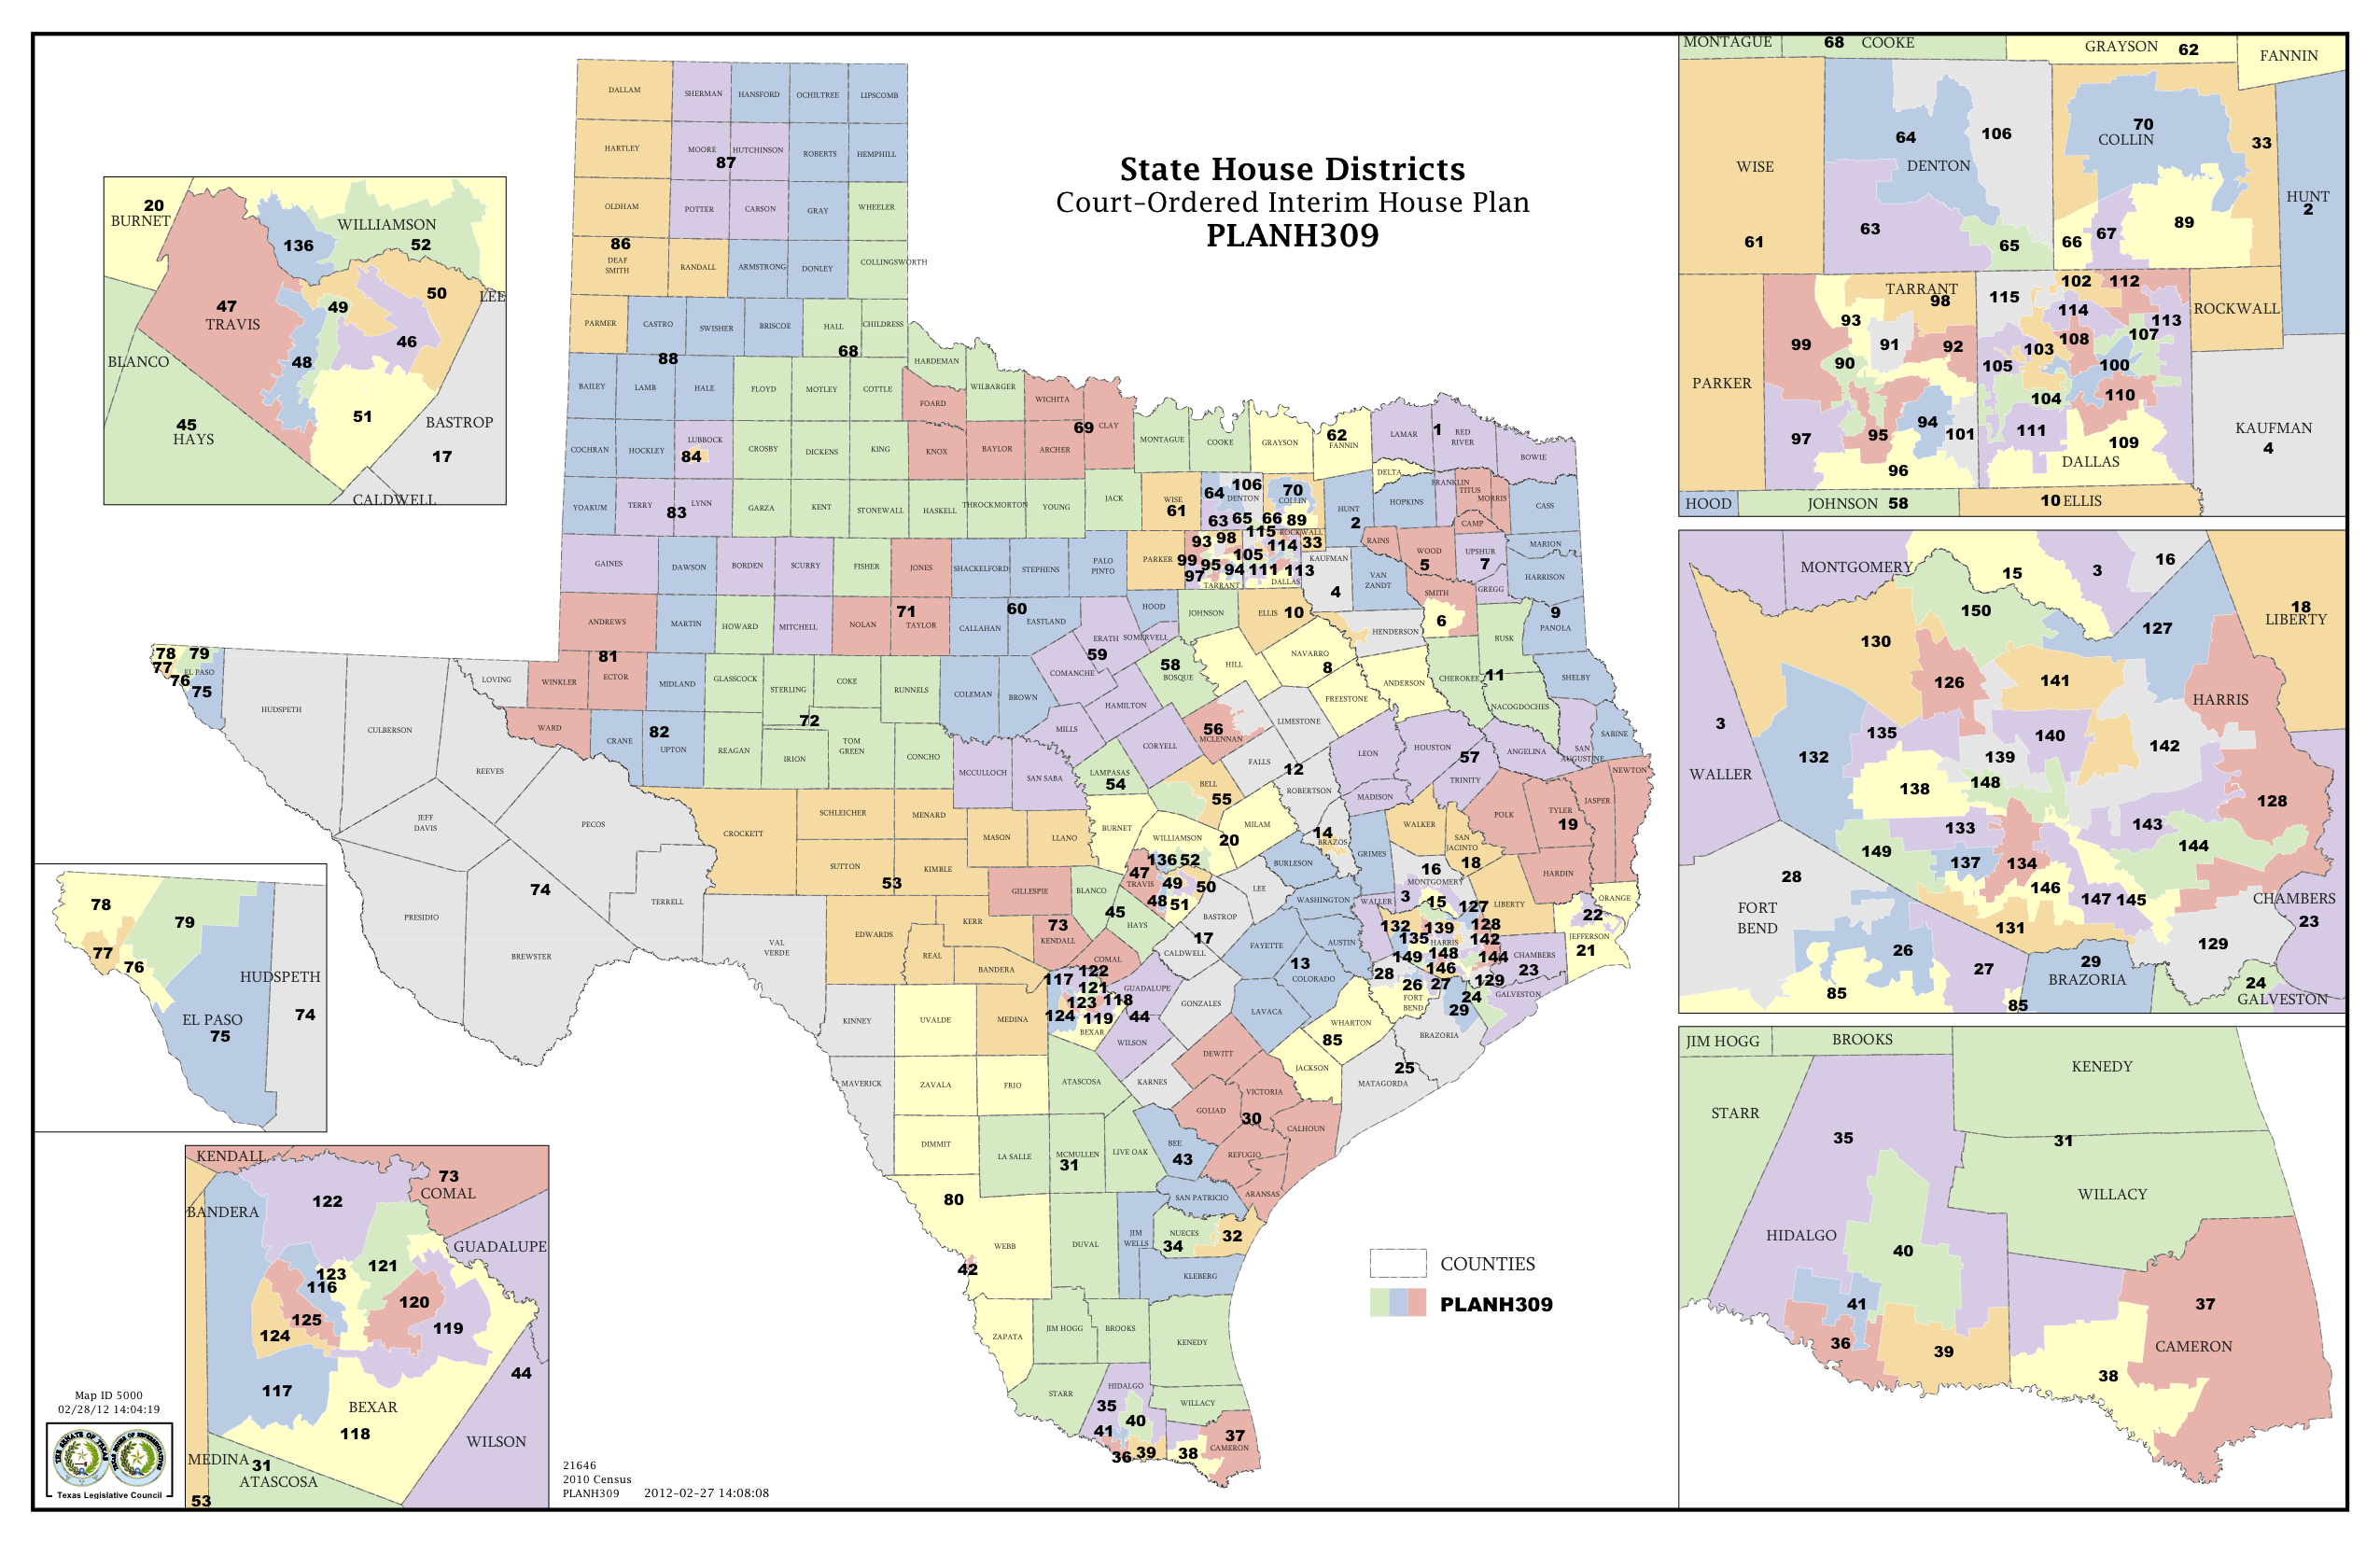 Texas House Districts Map   Business Ideas 2013 - Texas State Representatives District Map